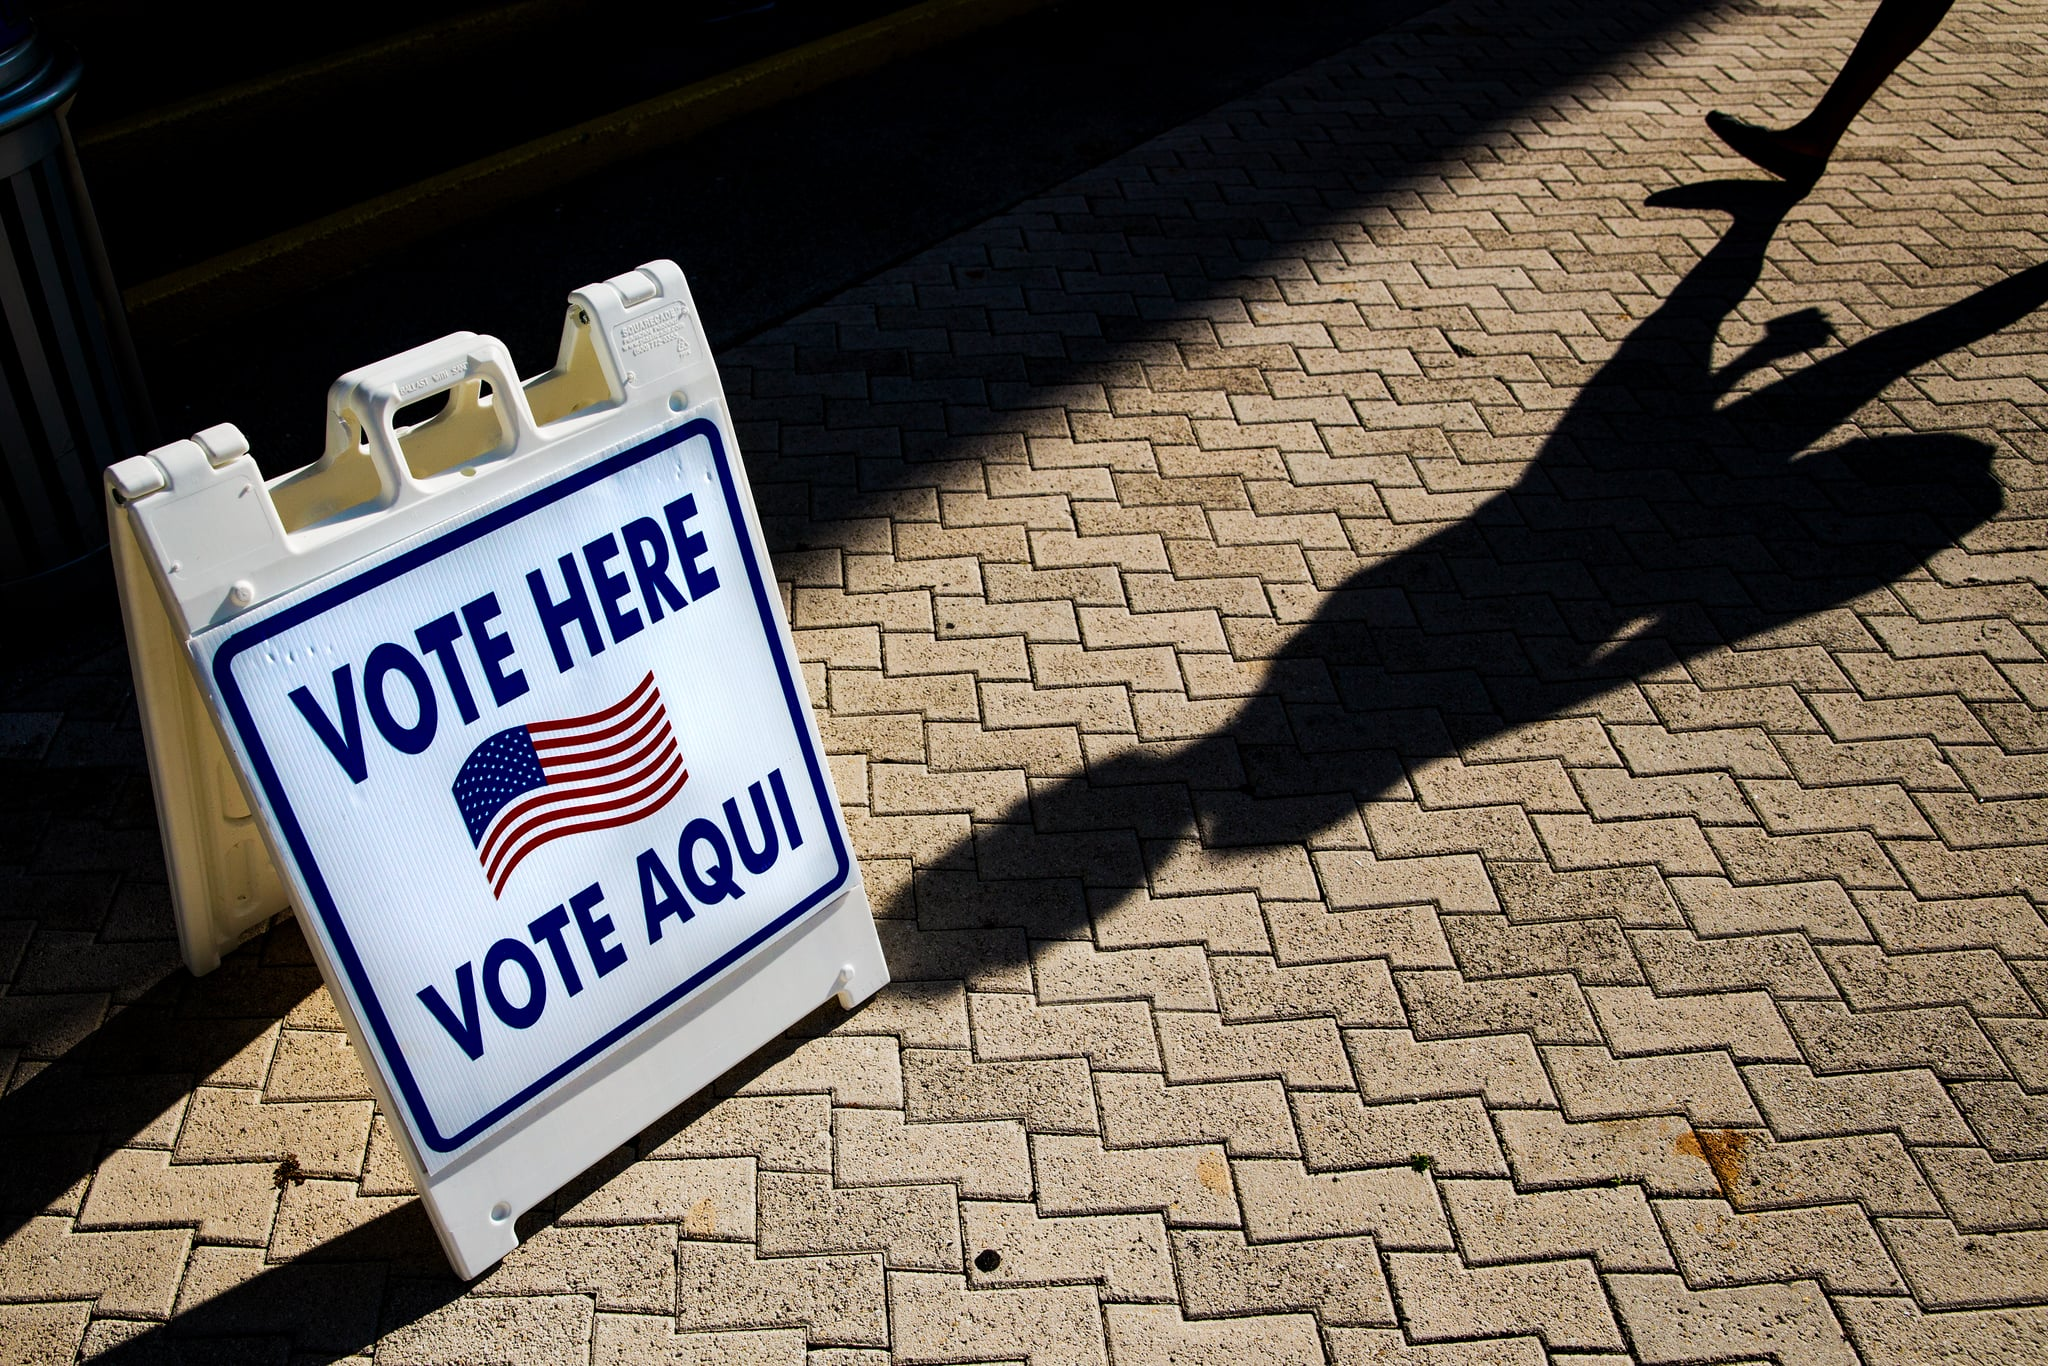 A vote here sign outside a polling location in Miami Beach, Florida, U.S. Photographer: Scott McIntyre/Bloomberg